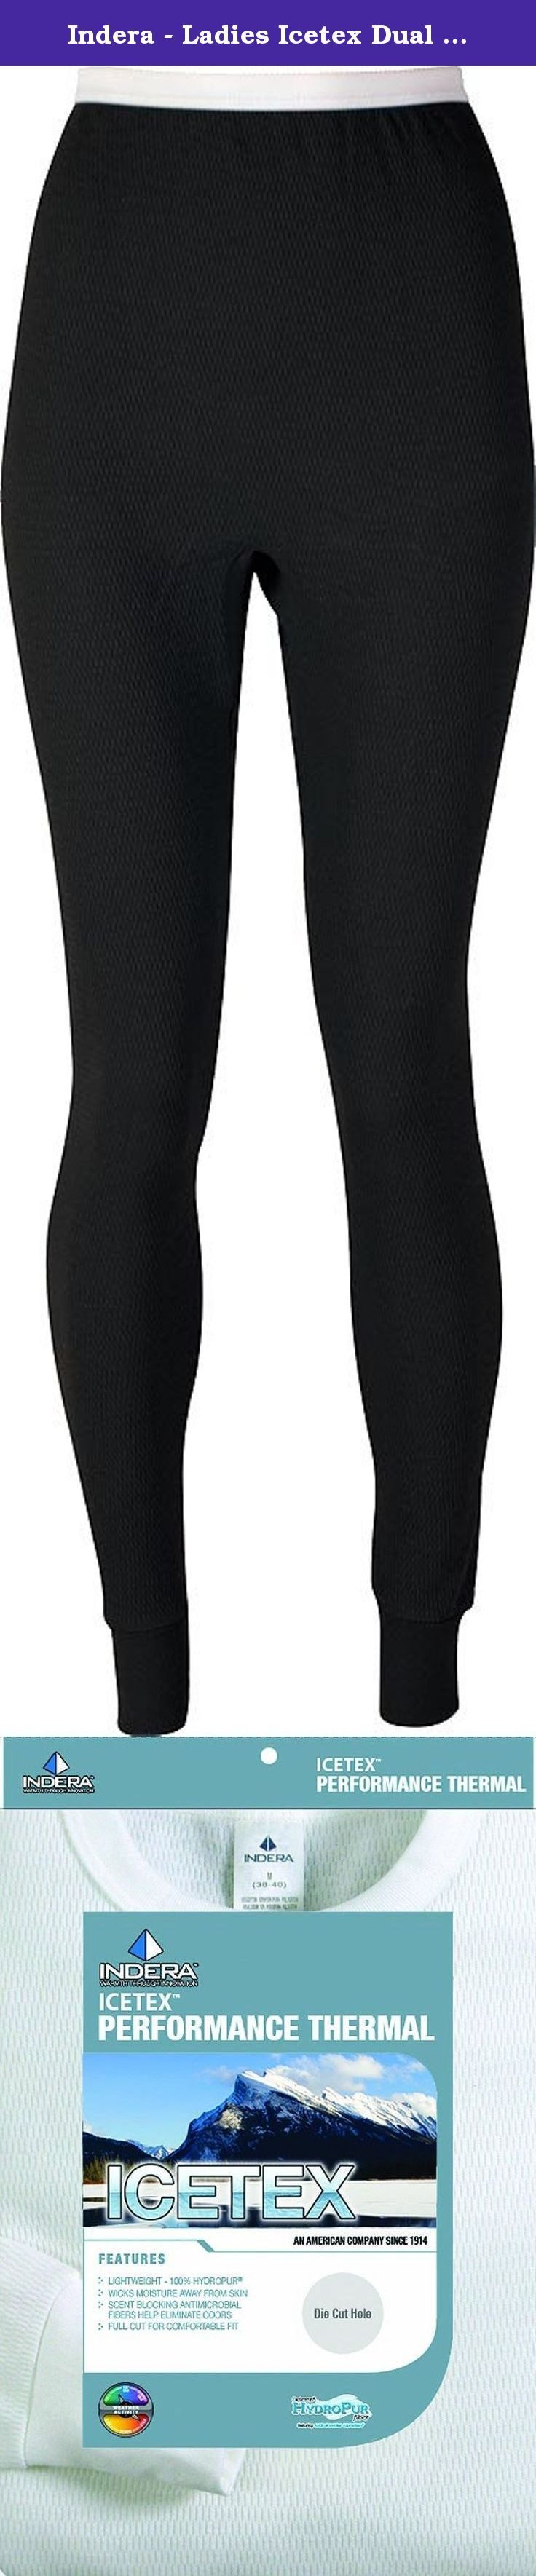 Indera - Ladies Icetex Dual Face Fleeced Thermal Heavy Weight Pant 287DR, Black 34174-Medium. Ladies try this LS Icetex Dual Face Fleeced Heavy Weight Thermal (287), It is fleeced ICETEX inside and a combed cotton outside with scent blocking fibers to helps reduce odor, Heavy weight and wicks moisture, For extreme cold weather and high activity, Top size Small = 34/36 Medium = 38/40 Large = 42/44 Extra Large = 46/48 pant size Small = 30/32 Medium = 34/36 Large = 38/40 Extra Large = 42/44...